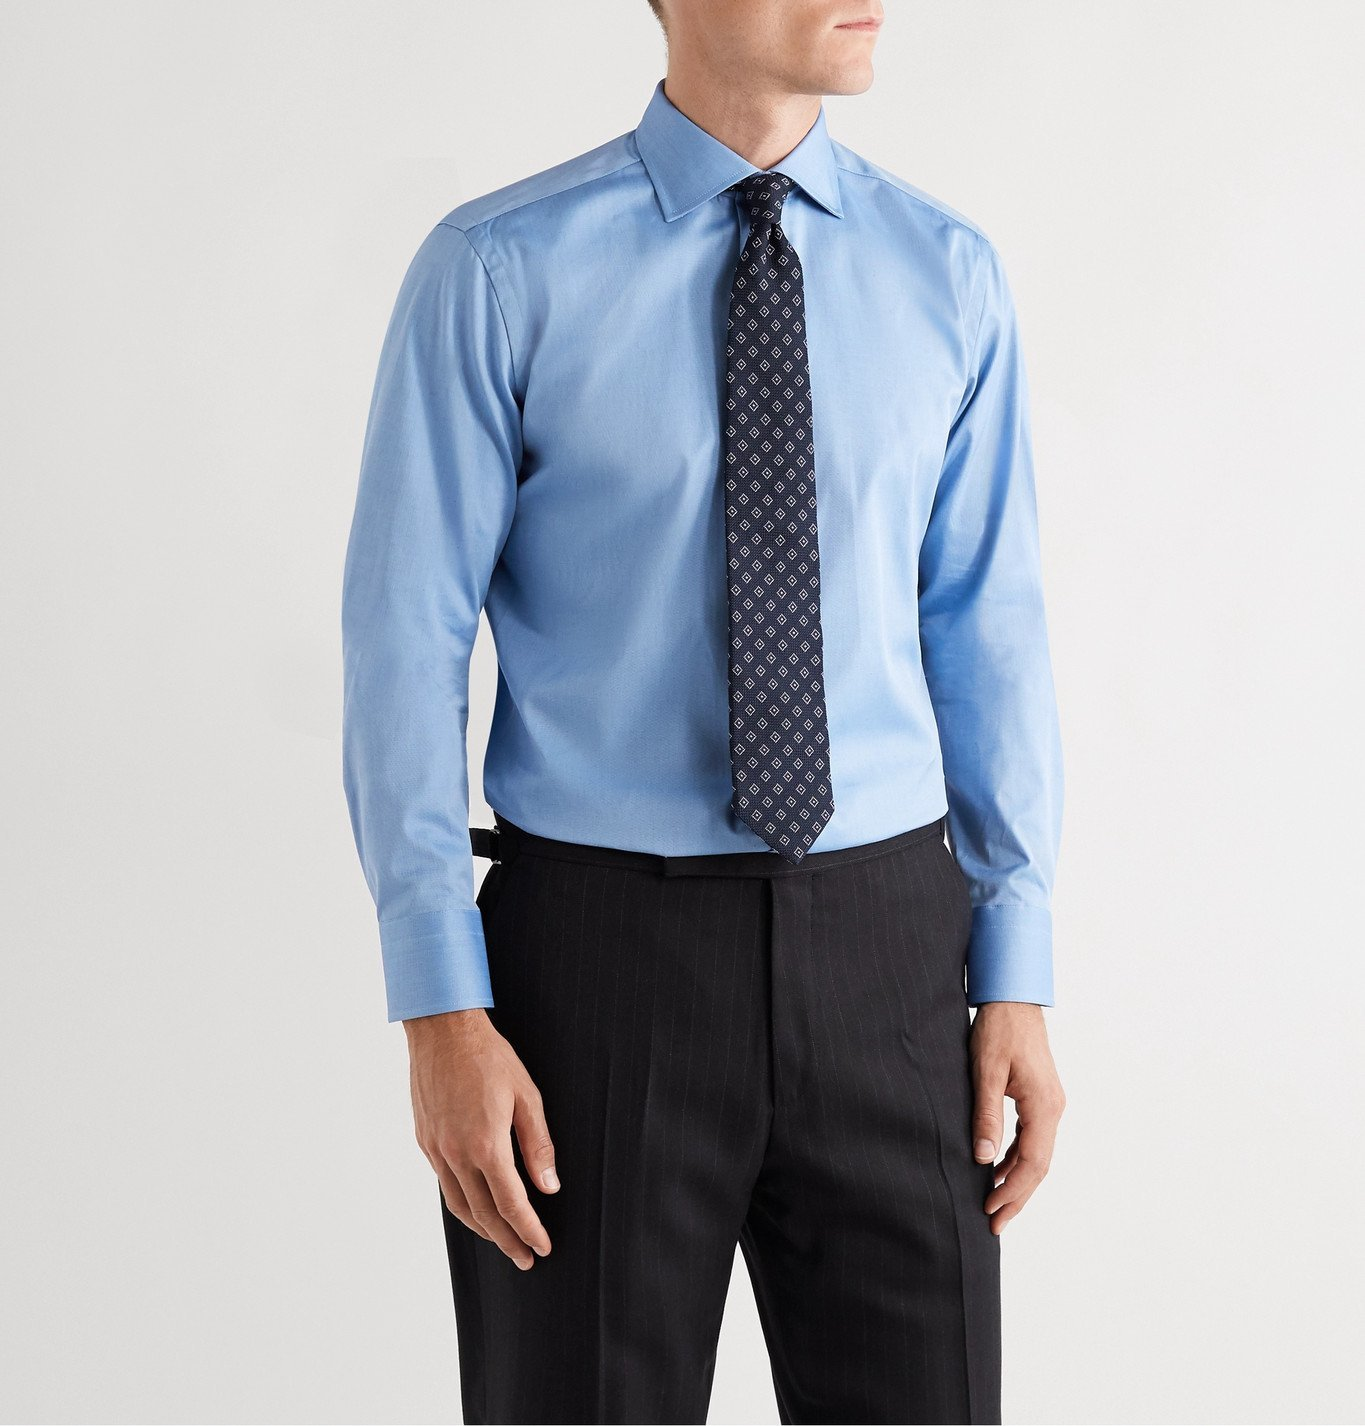 Canali - Cotton Shirt - Unknown